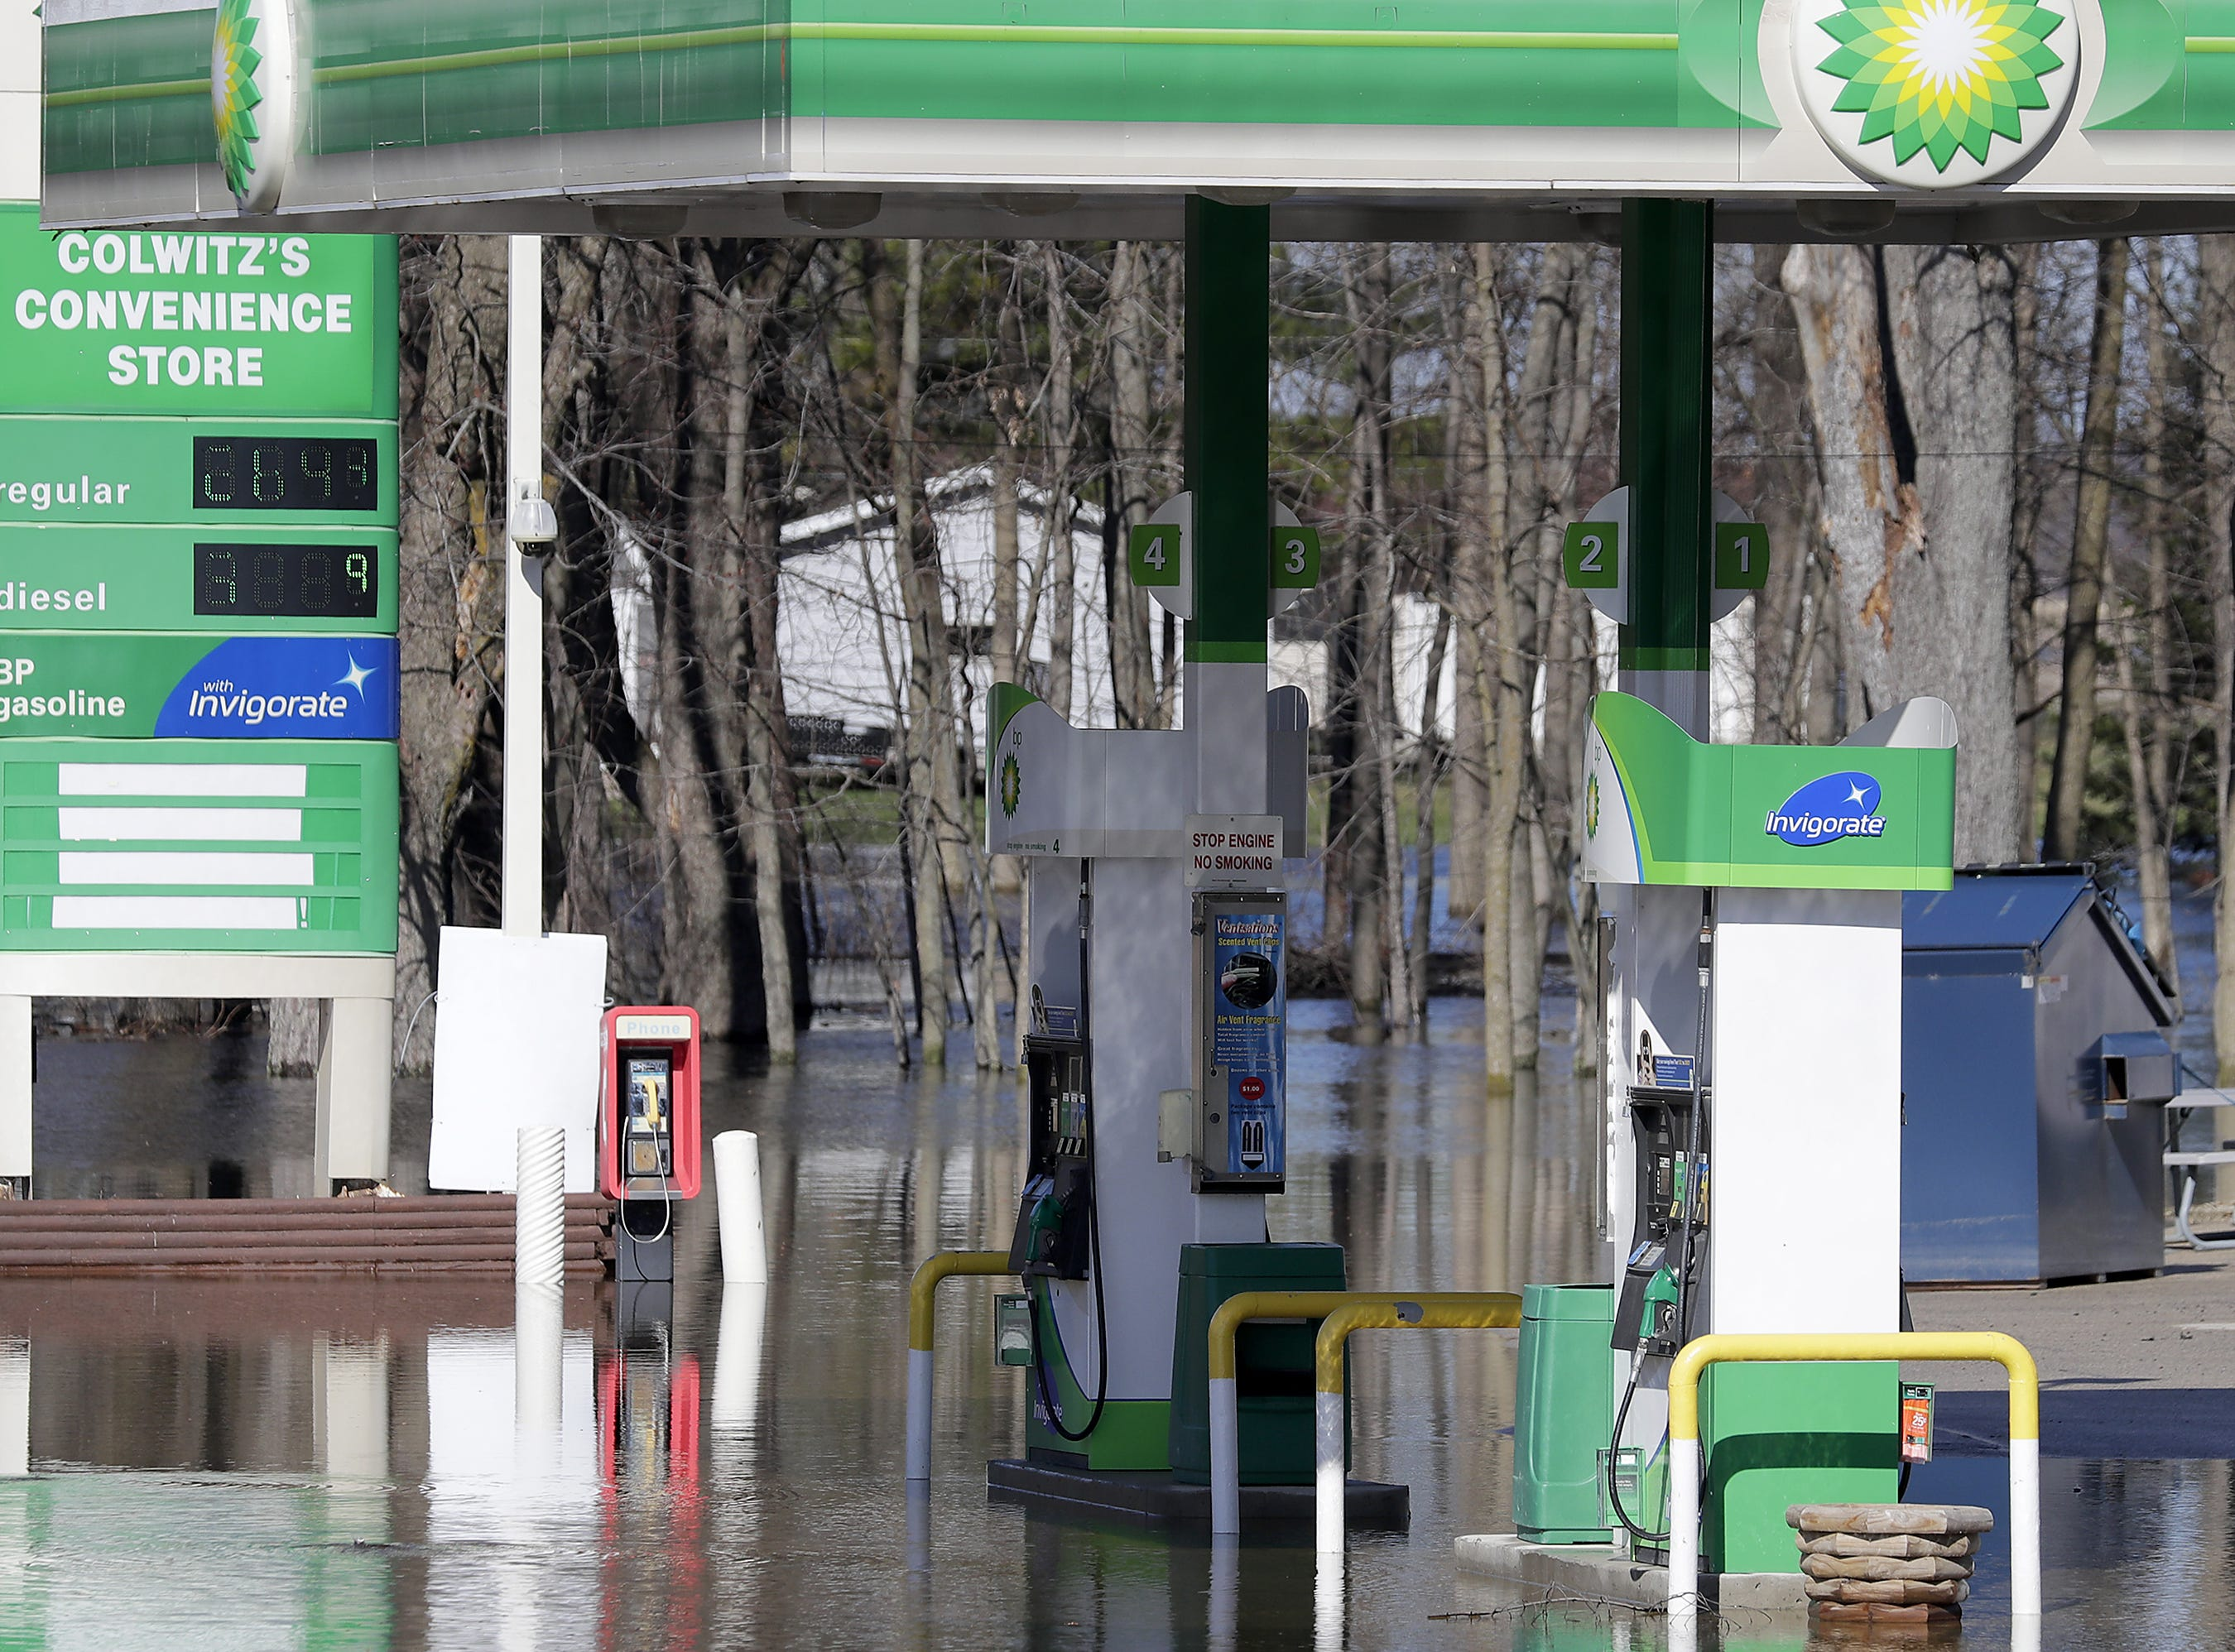 Flooded gas pumps at the Riverside Pump and Munch, formerly Colwitz's Convenience Store, as during flooding along the Wolf River on Tuesday, April 23, 2019, in Shiocton, Wis.  Wm. Glasheen/USA TODAY NETWORK-Wisconsin.